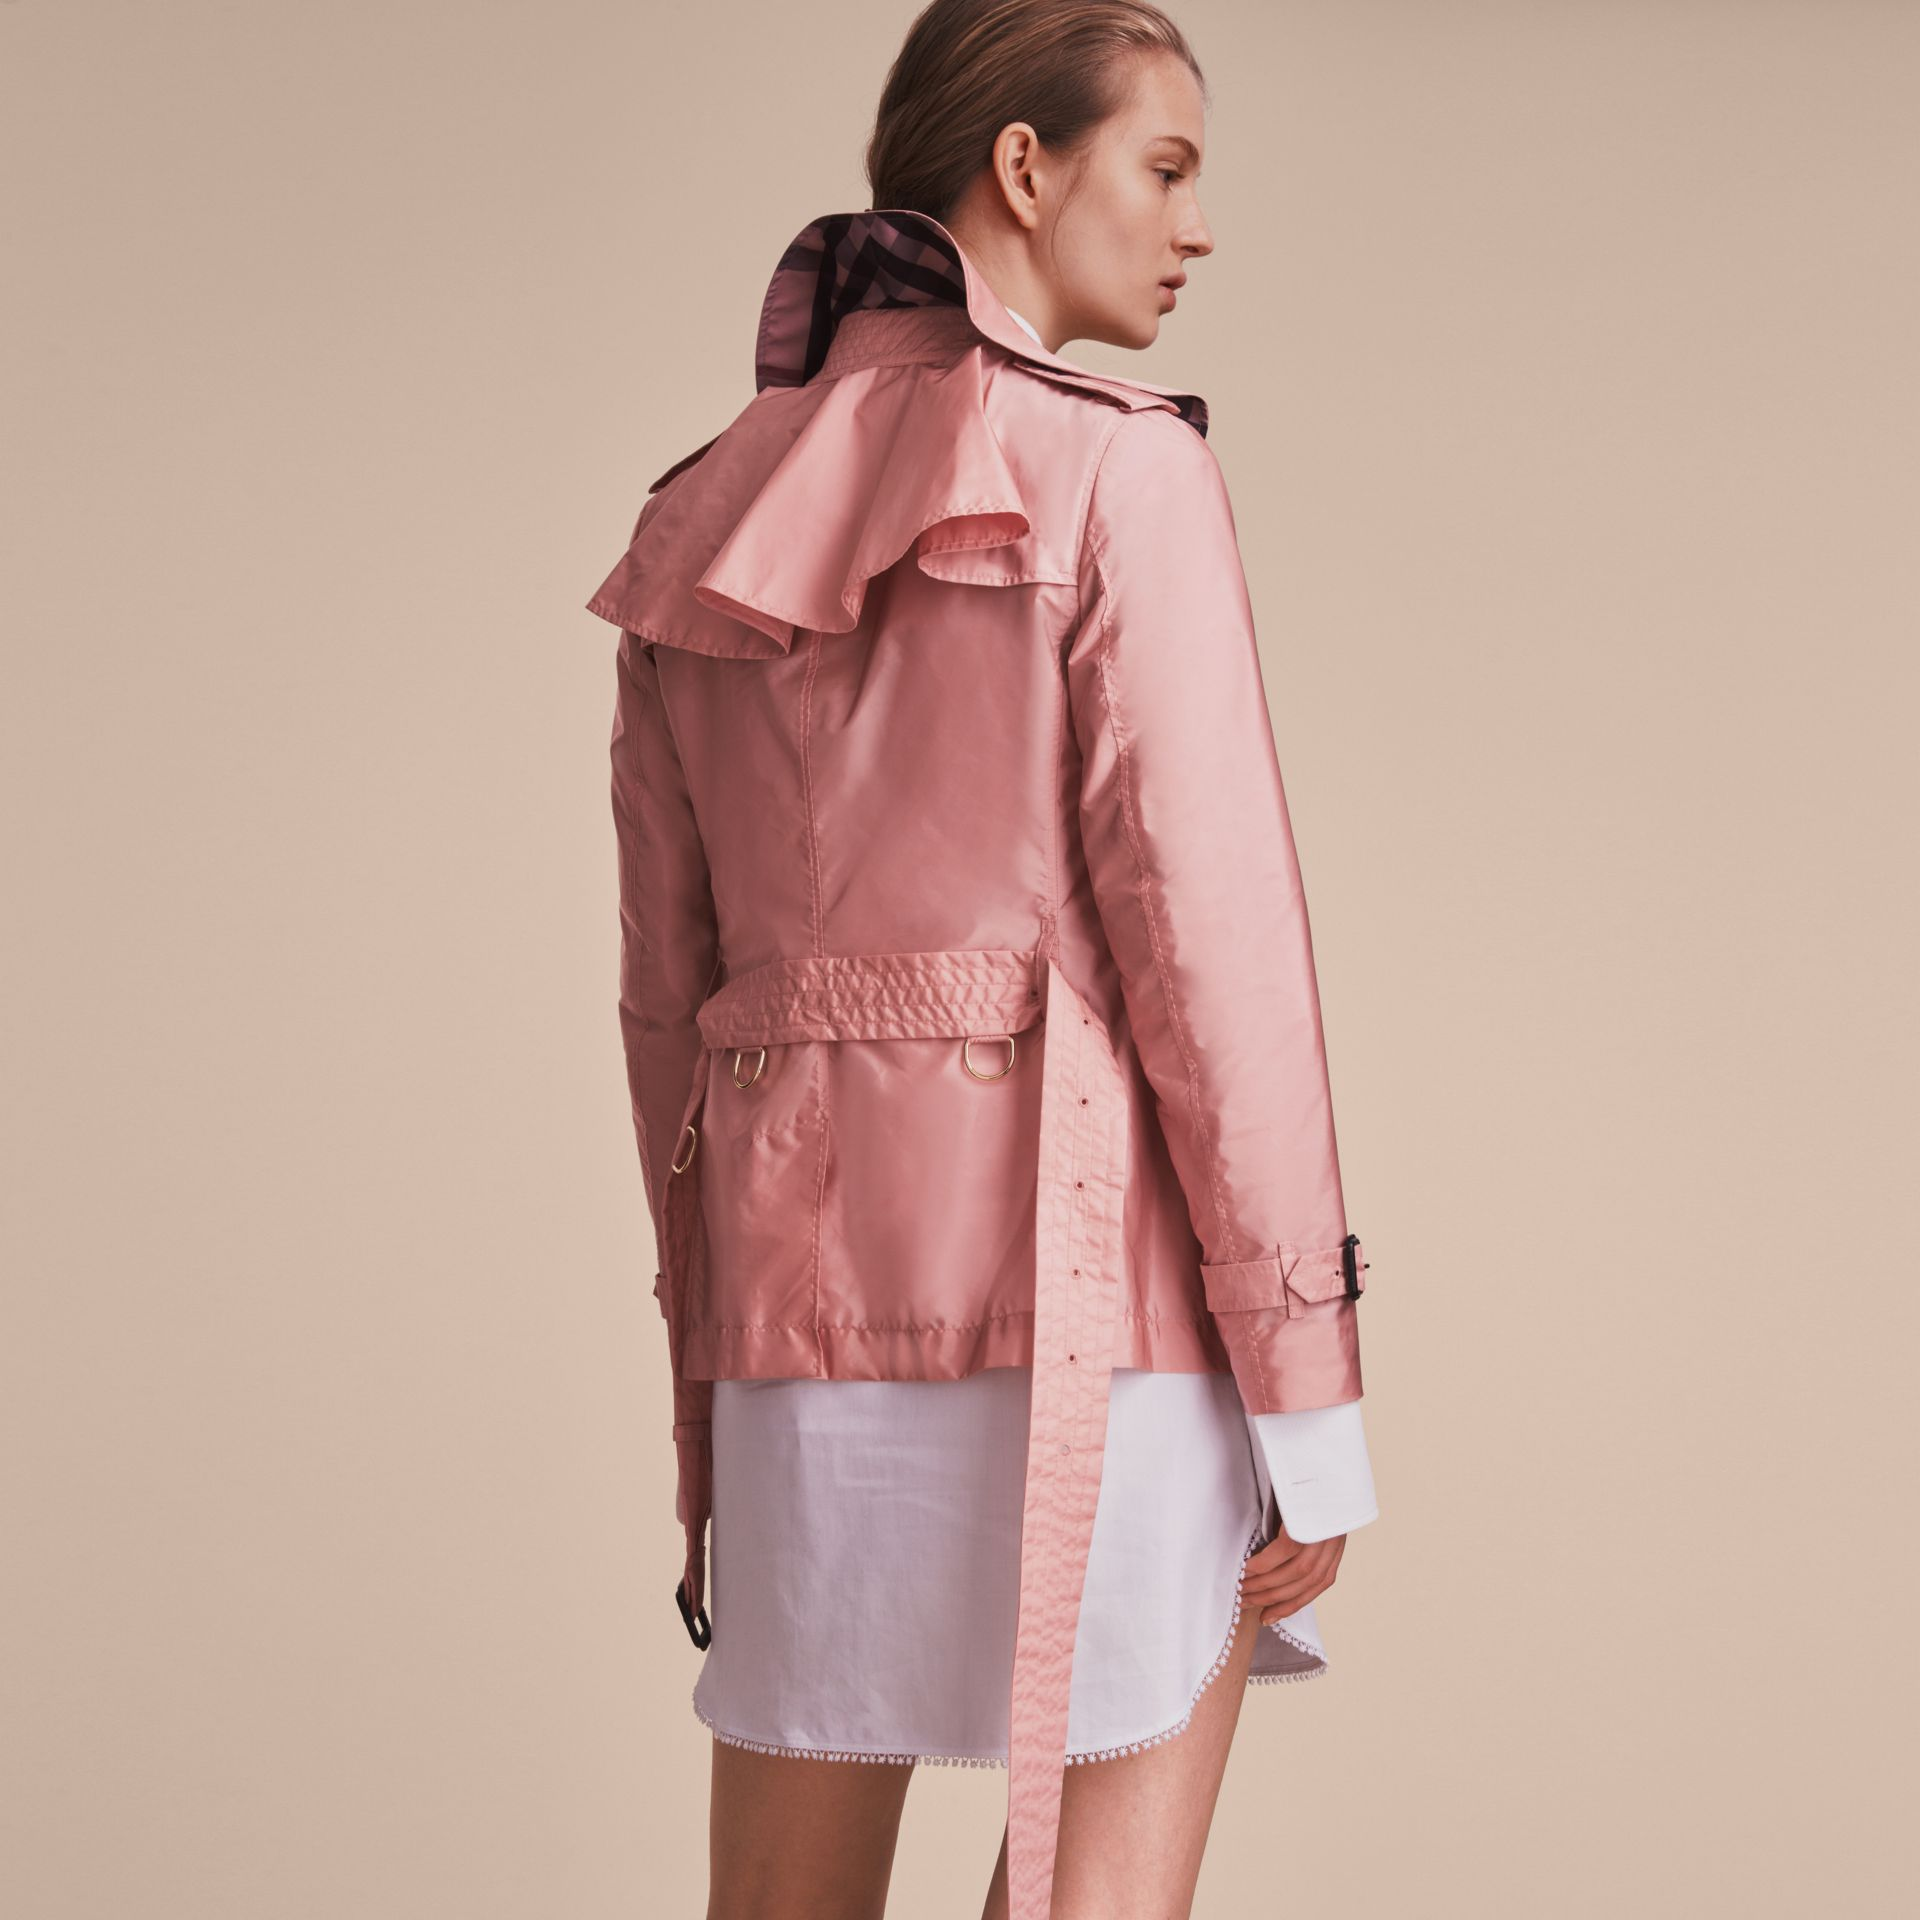 Showerproof Trench Coat in Antique Rose - Women | Burberry United States - gallery image 2